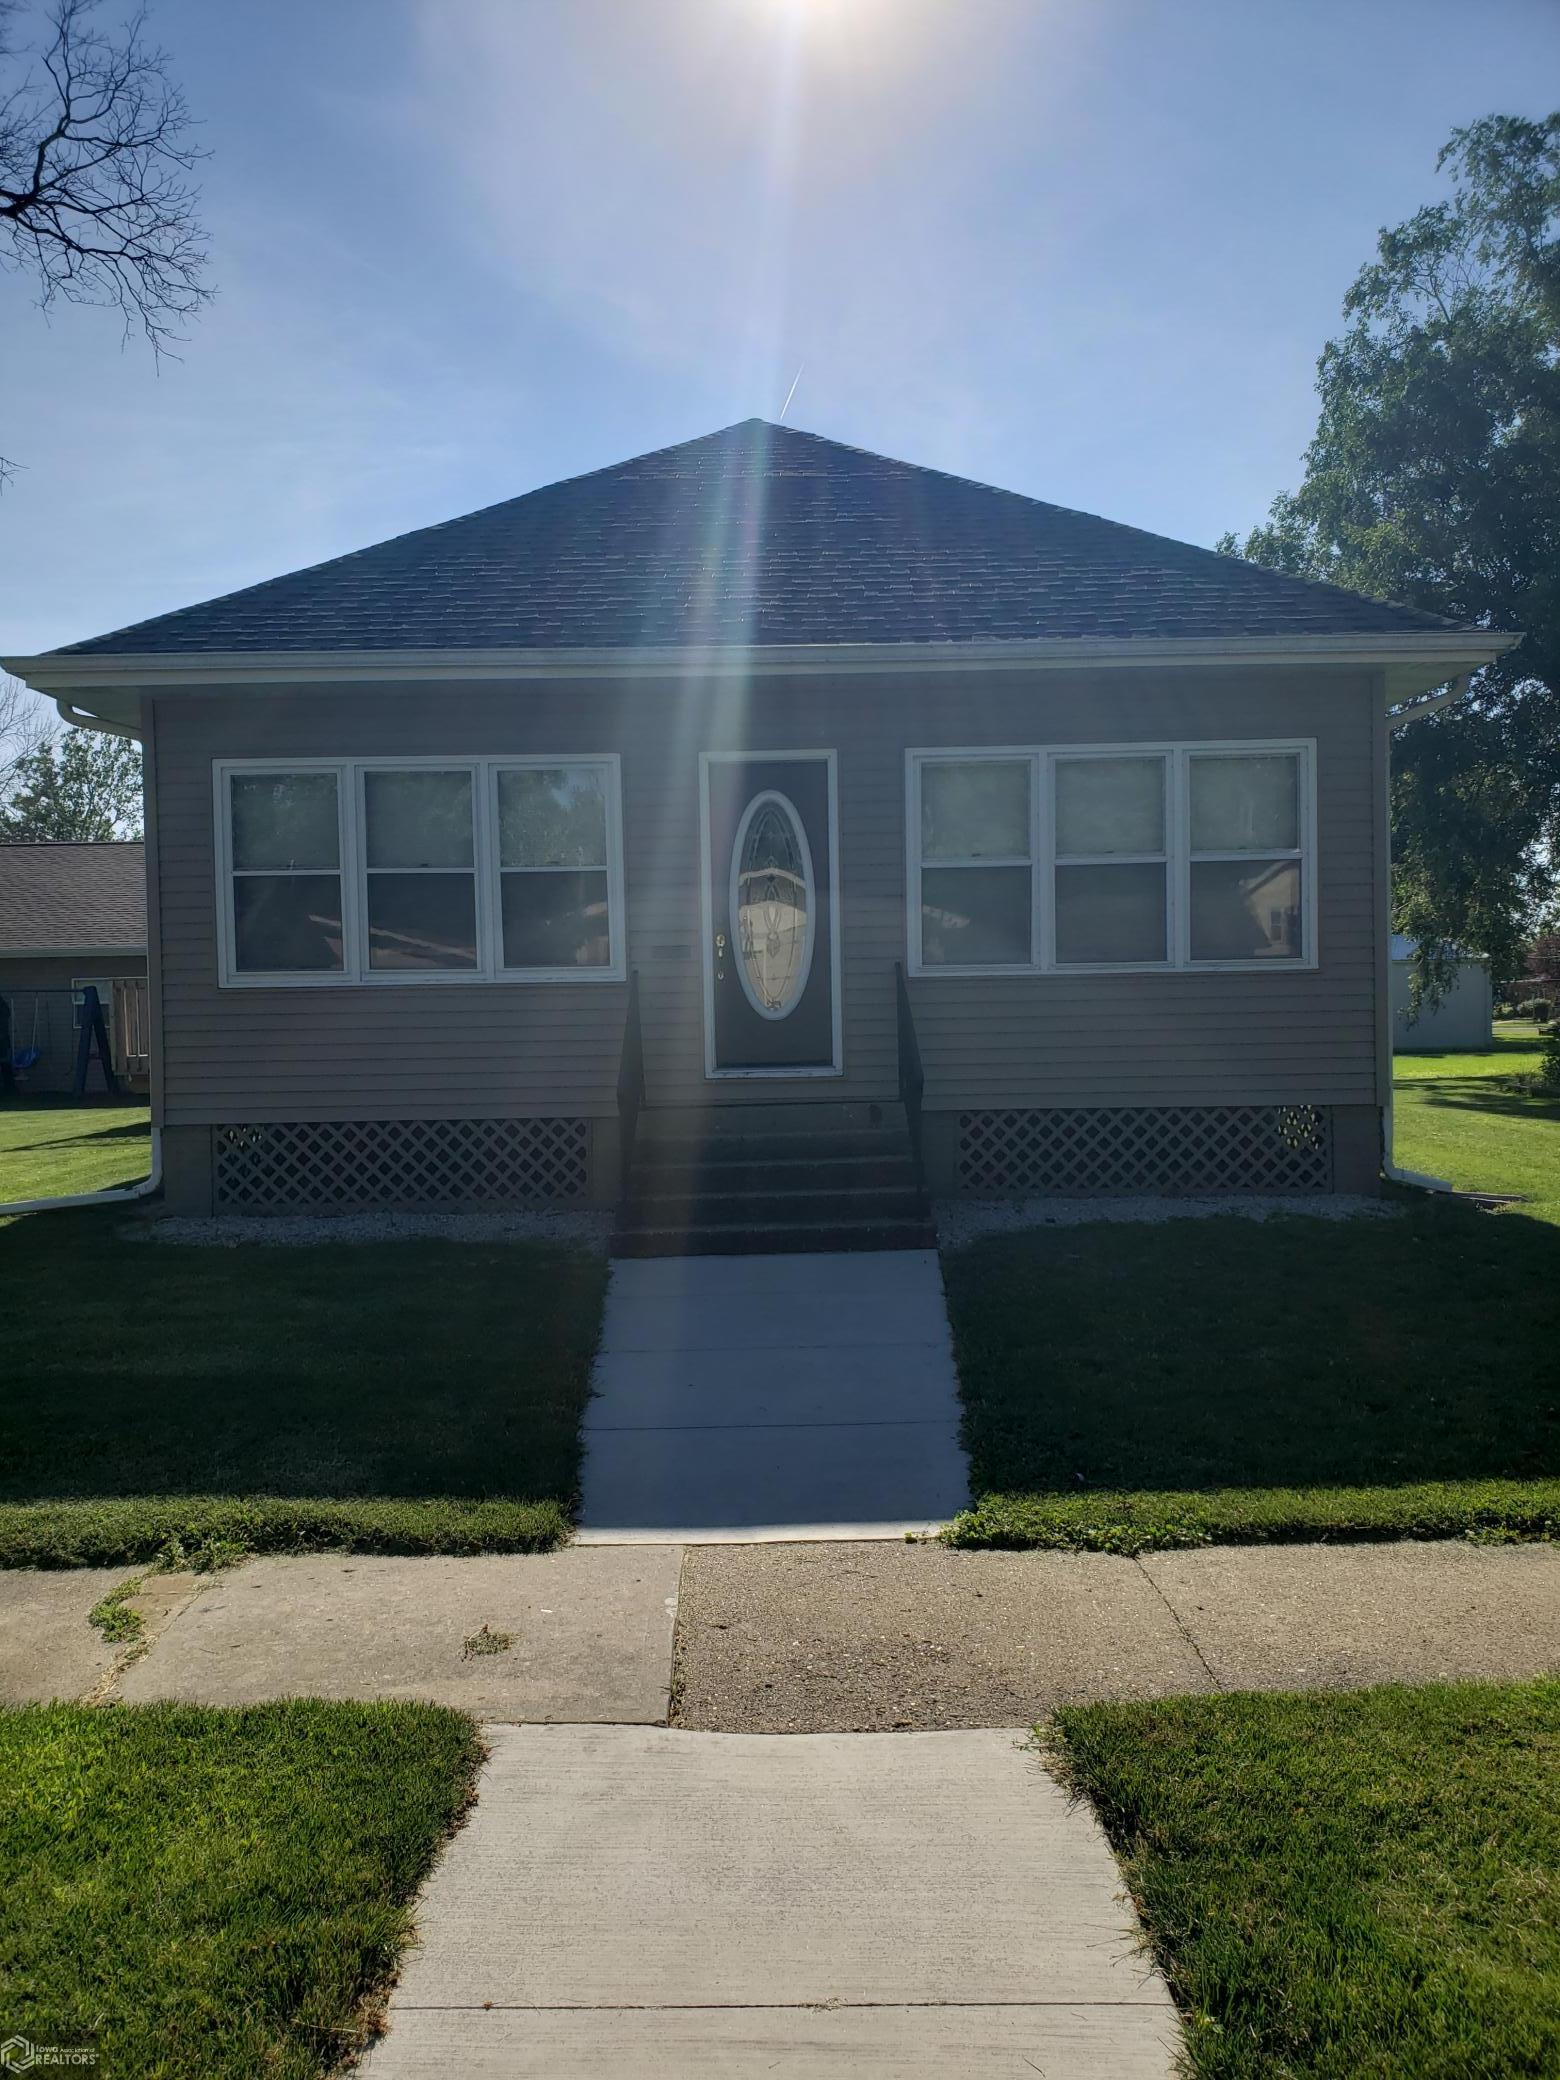 909 South 9th St Property Photo - Oskaloosa, IA real estate listing